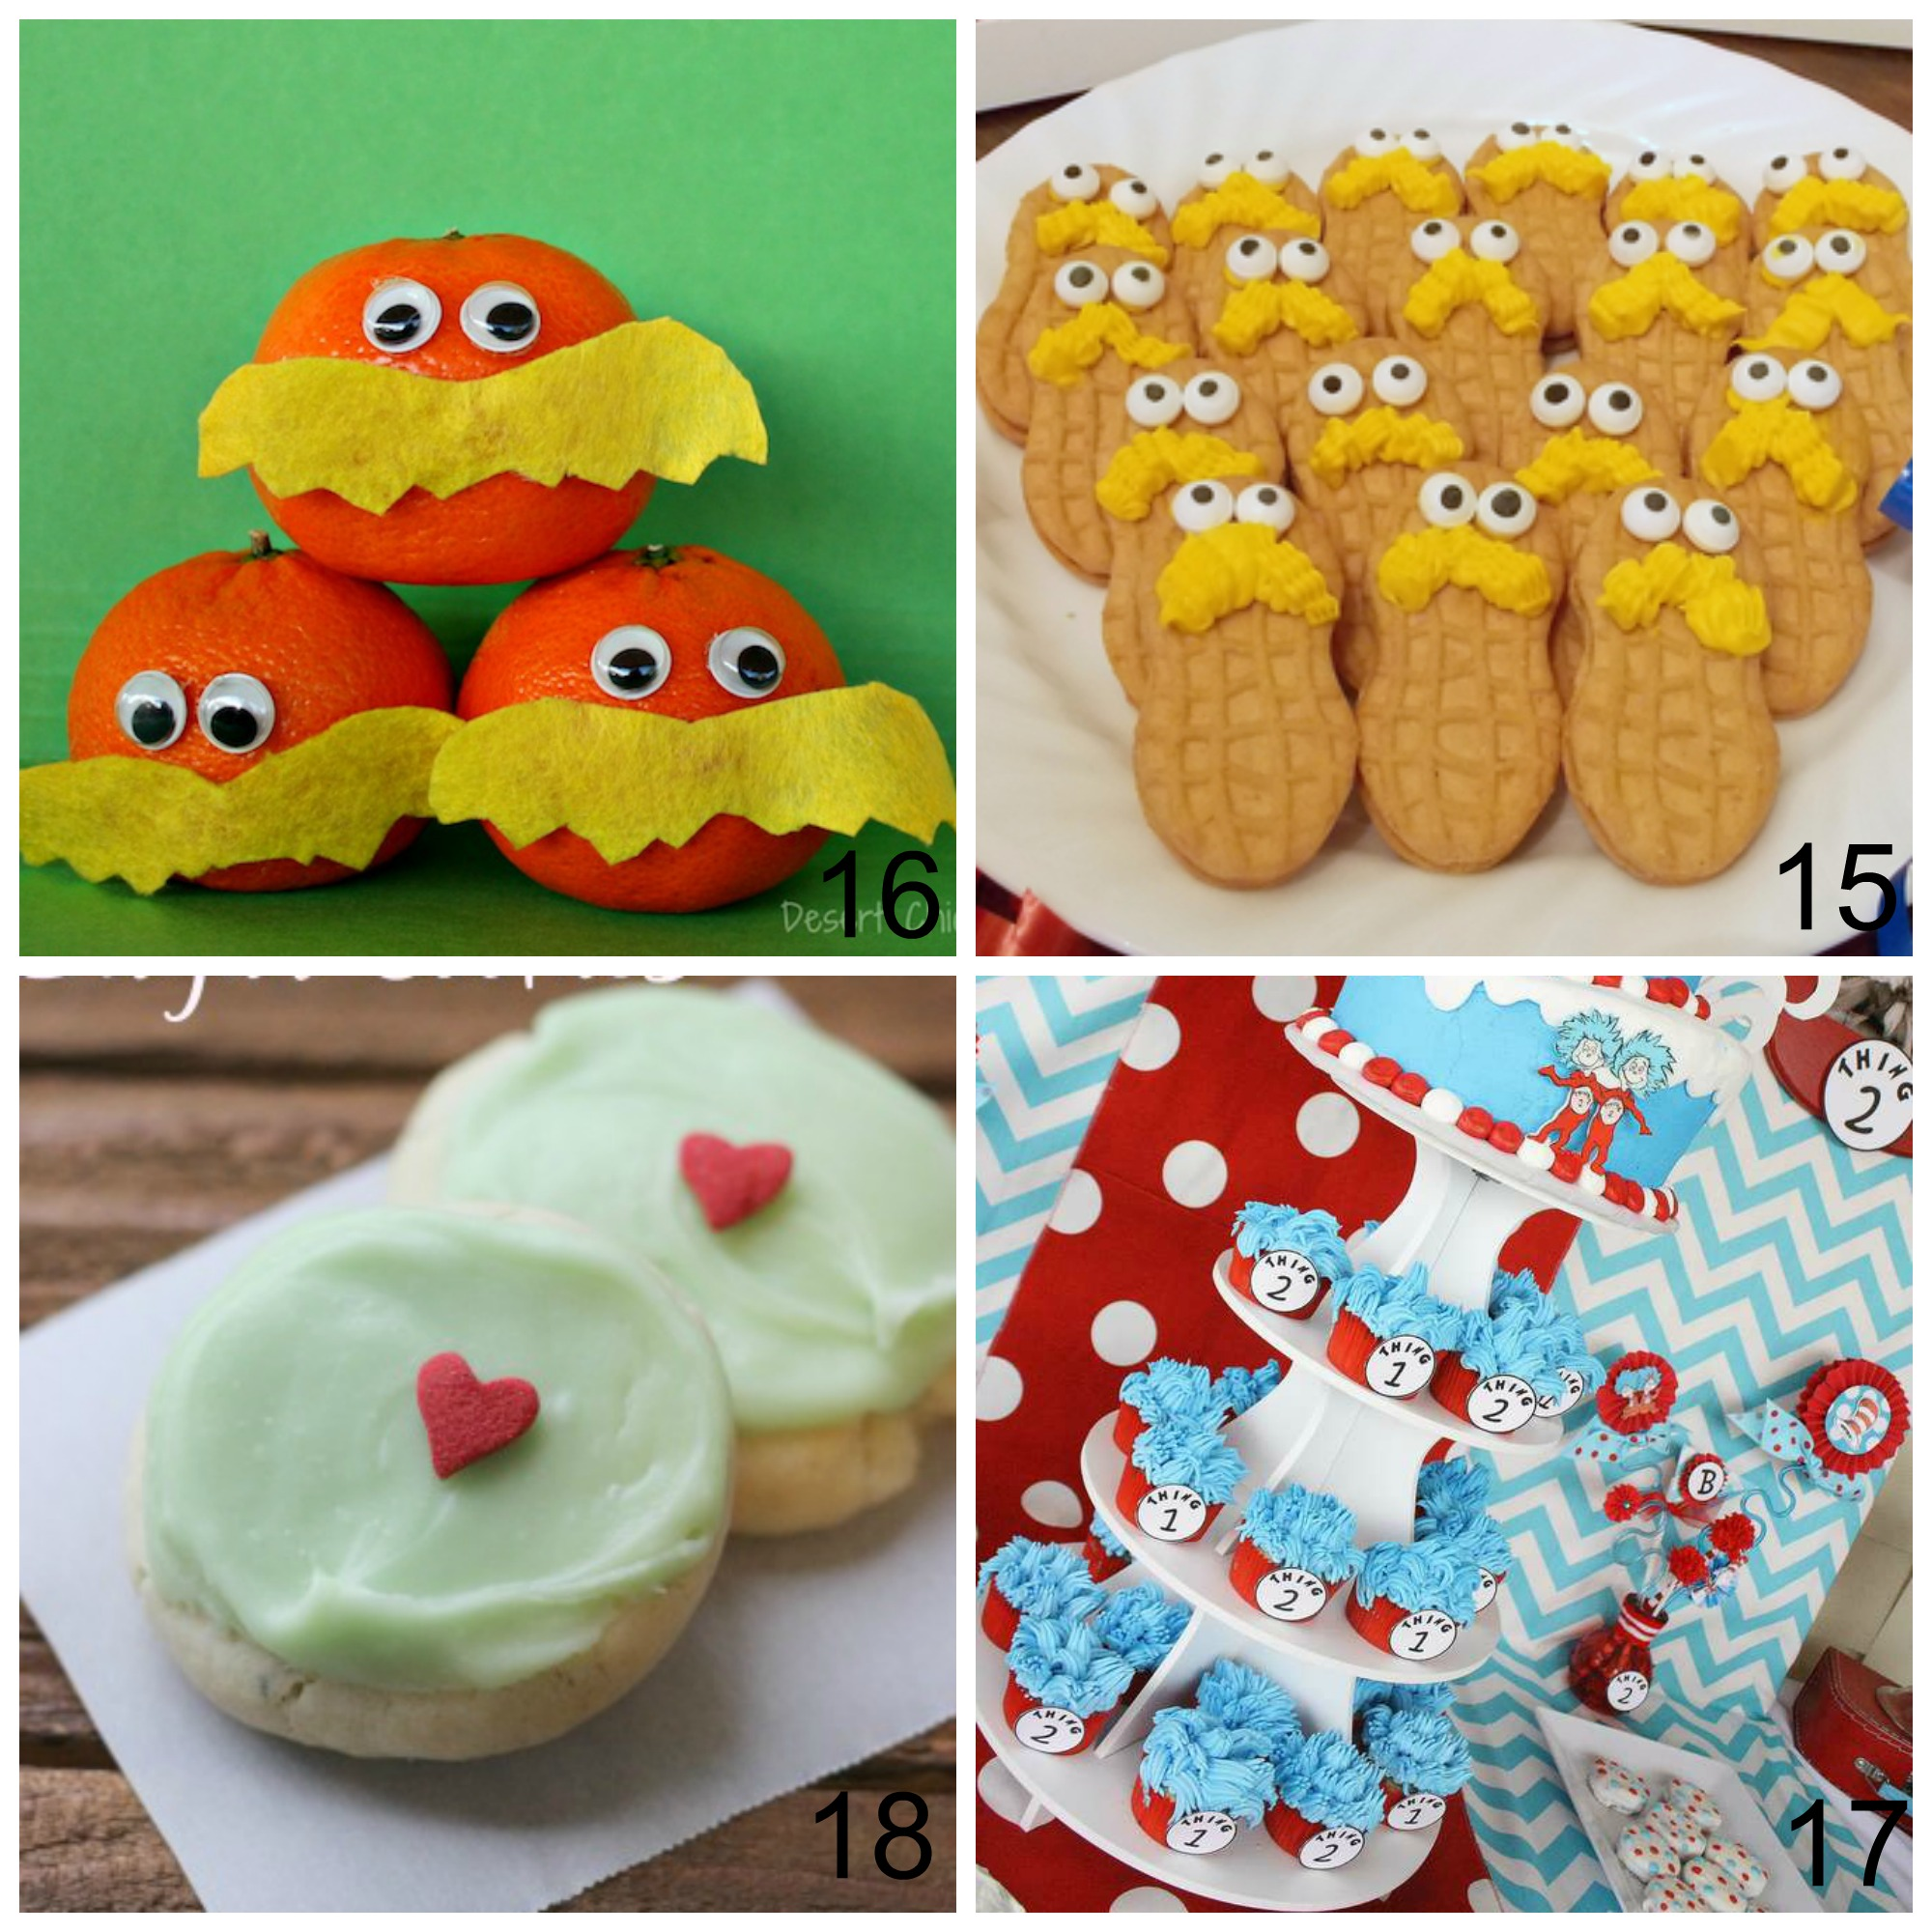 photograph relating to Truffula Seeds Printable named 25 Enjoyable Dr. Seuss Snacks and Crafts Ideal for Birthday or